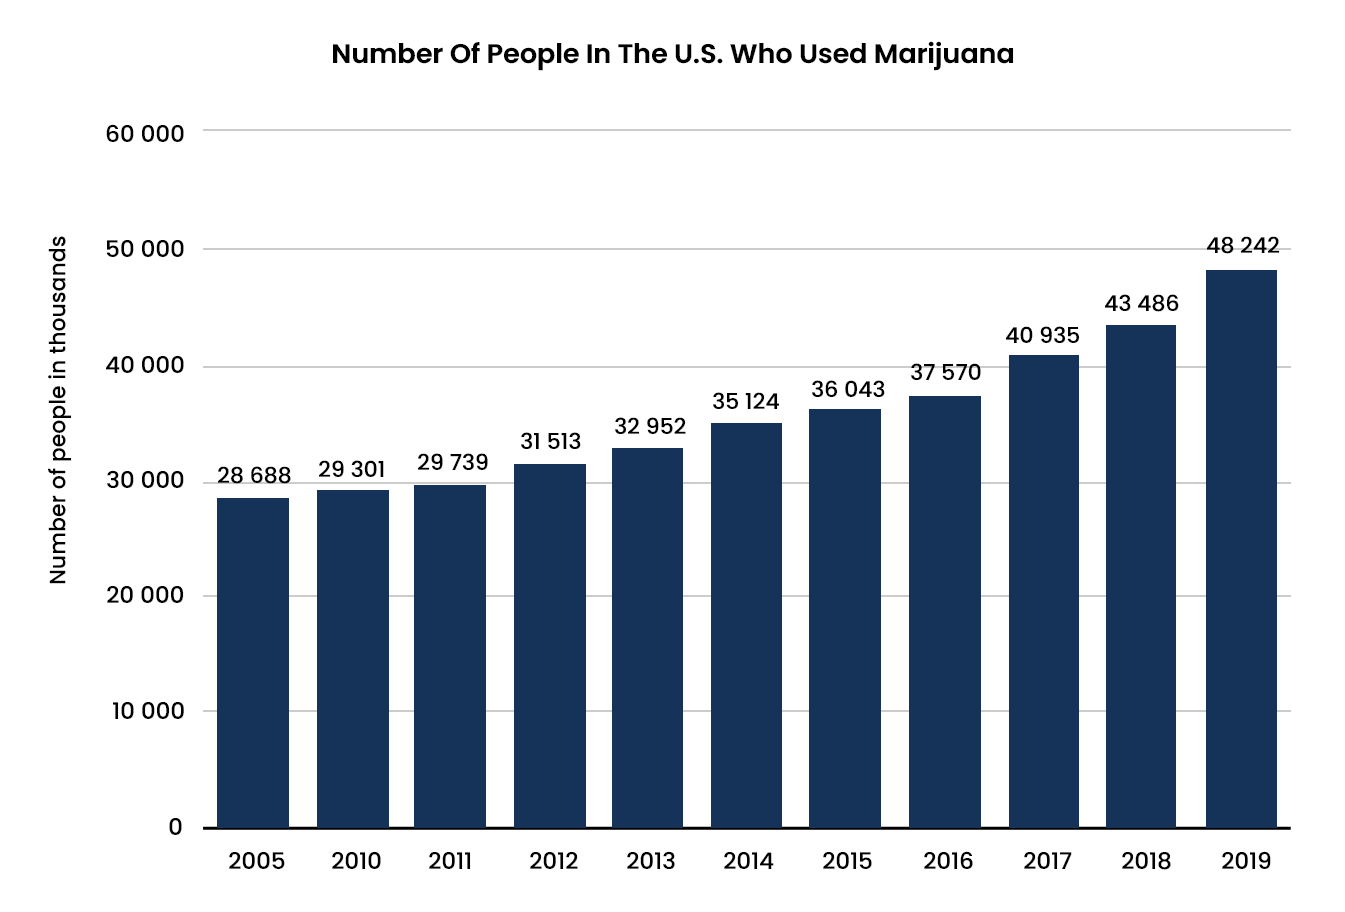 Cannabis Abuse Statistics - 1 - Recovery Partner Network